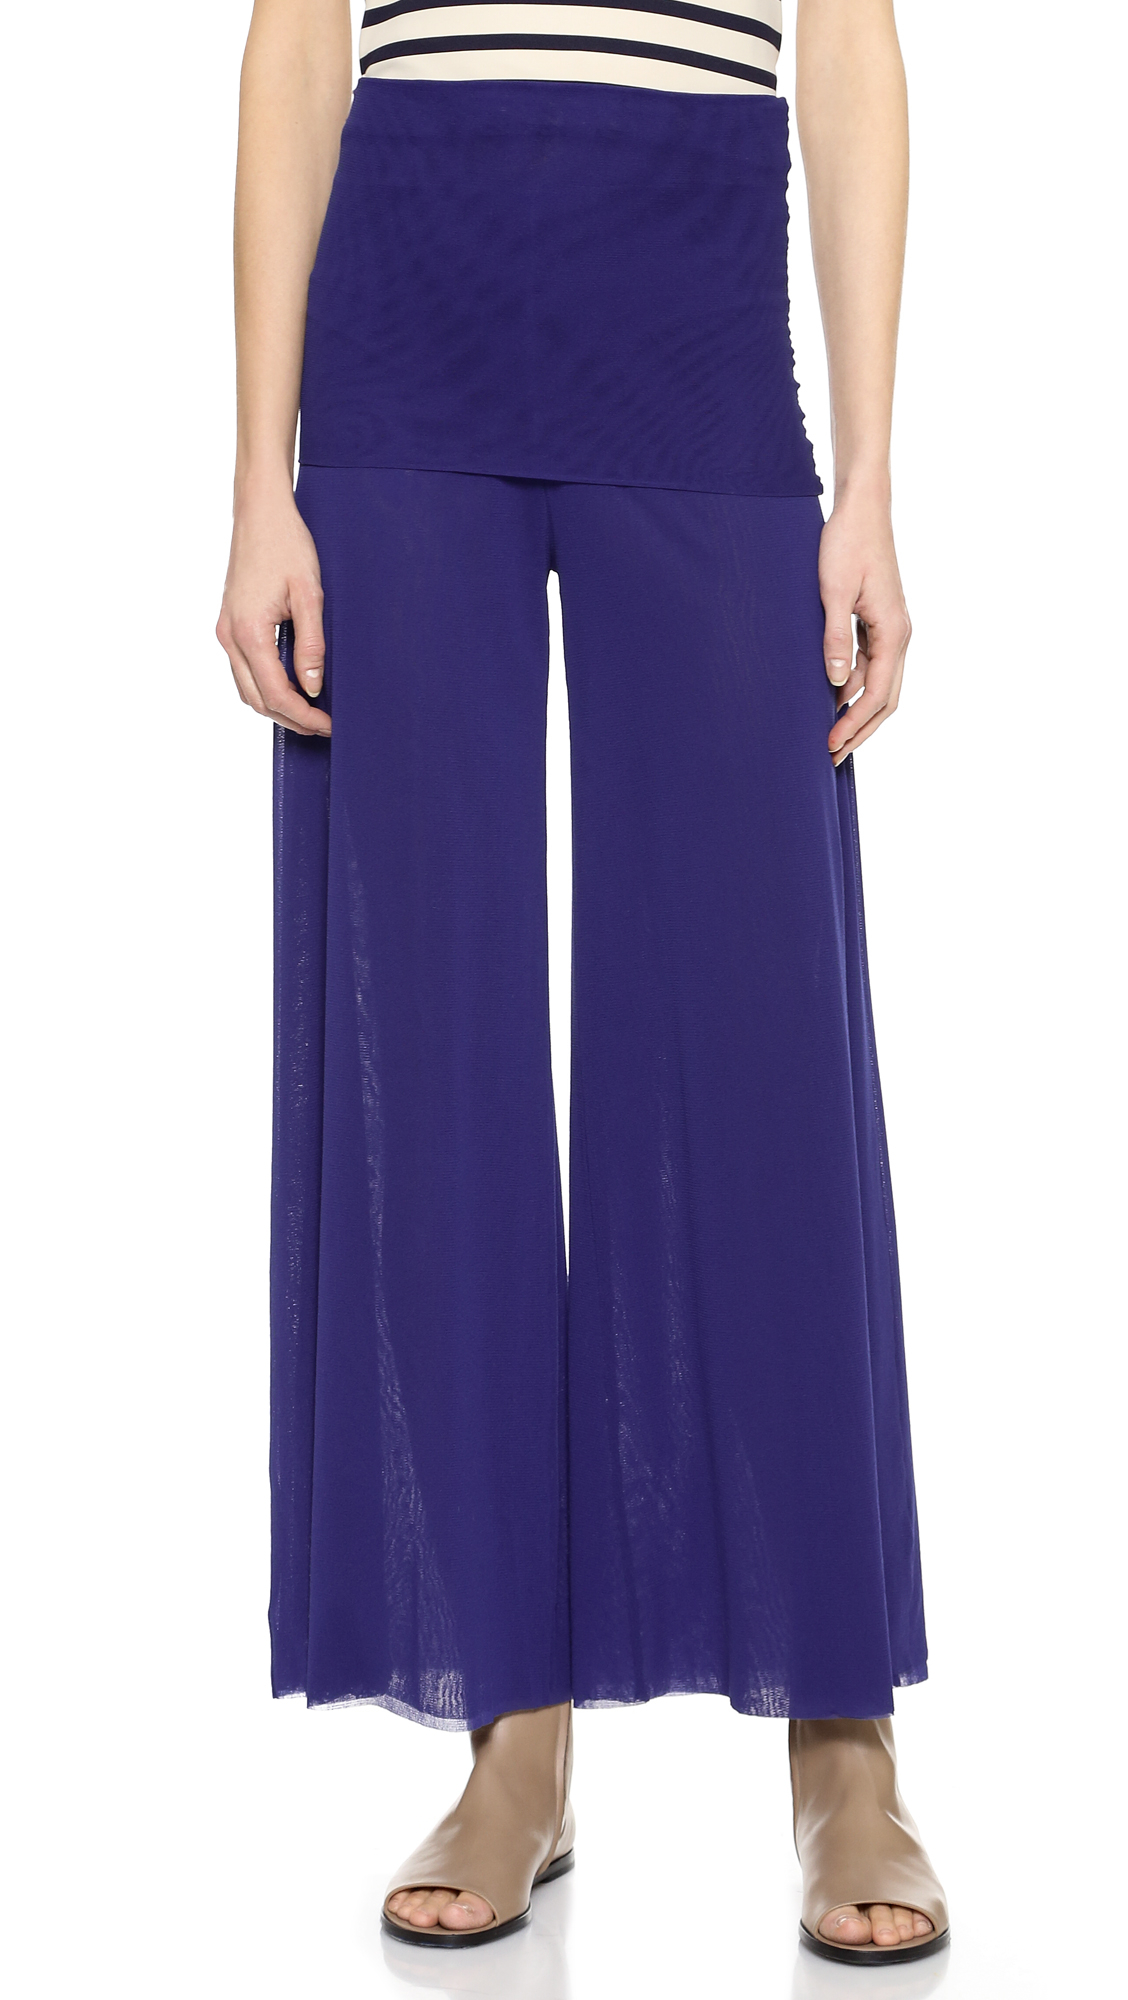 From luxurious velvet to cropped lengths, Dillard's has the perfect pair of women's wide-leg pants for your wardrobe.